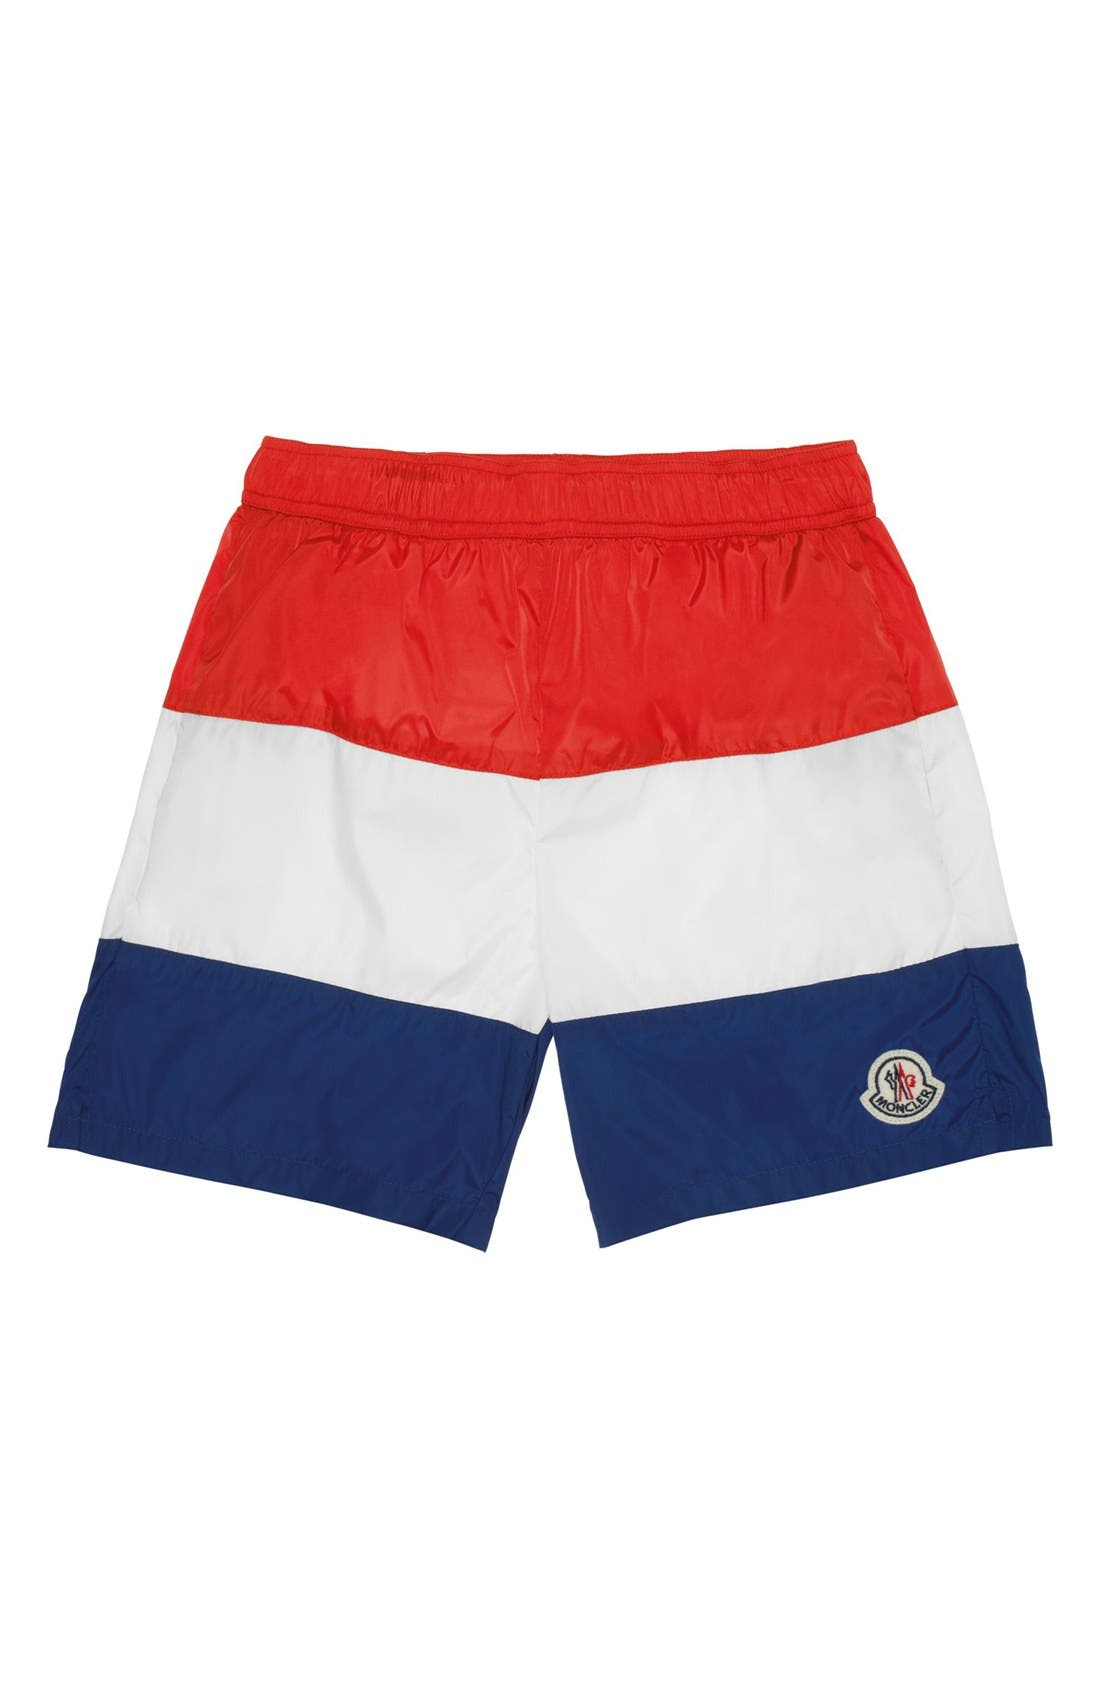 Moncler Swim Shorts (Toddler Boys)